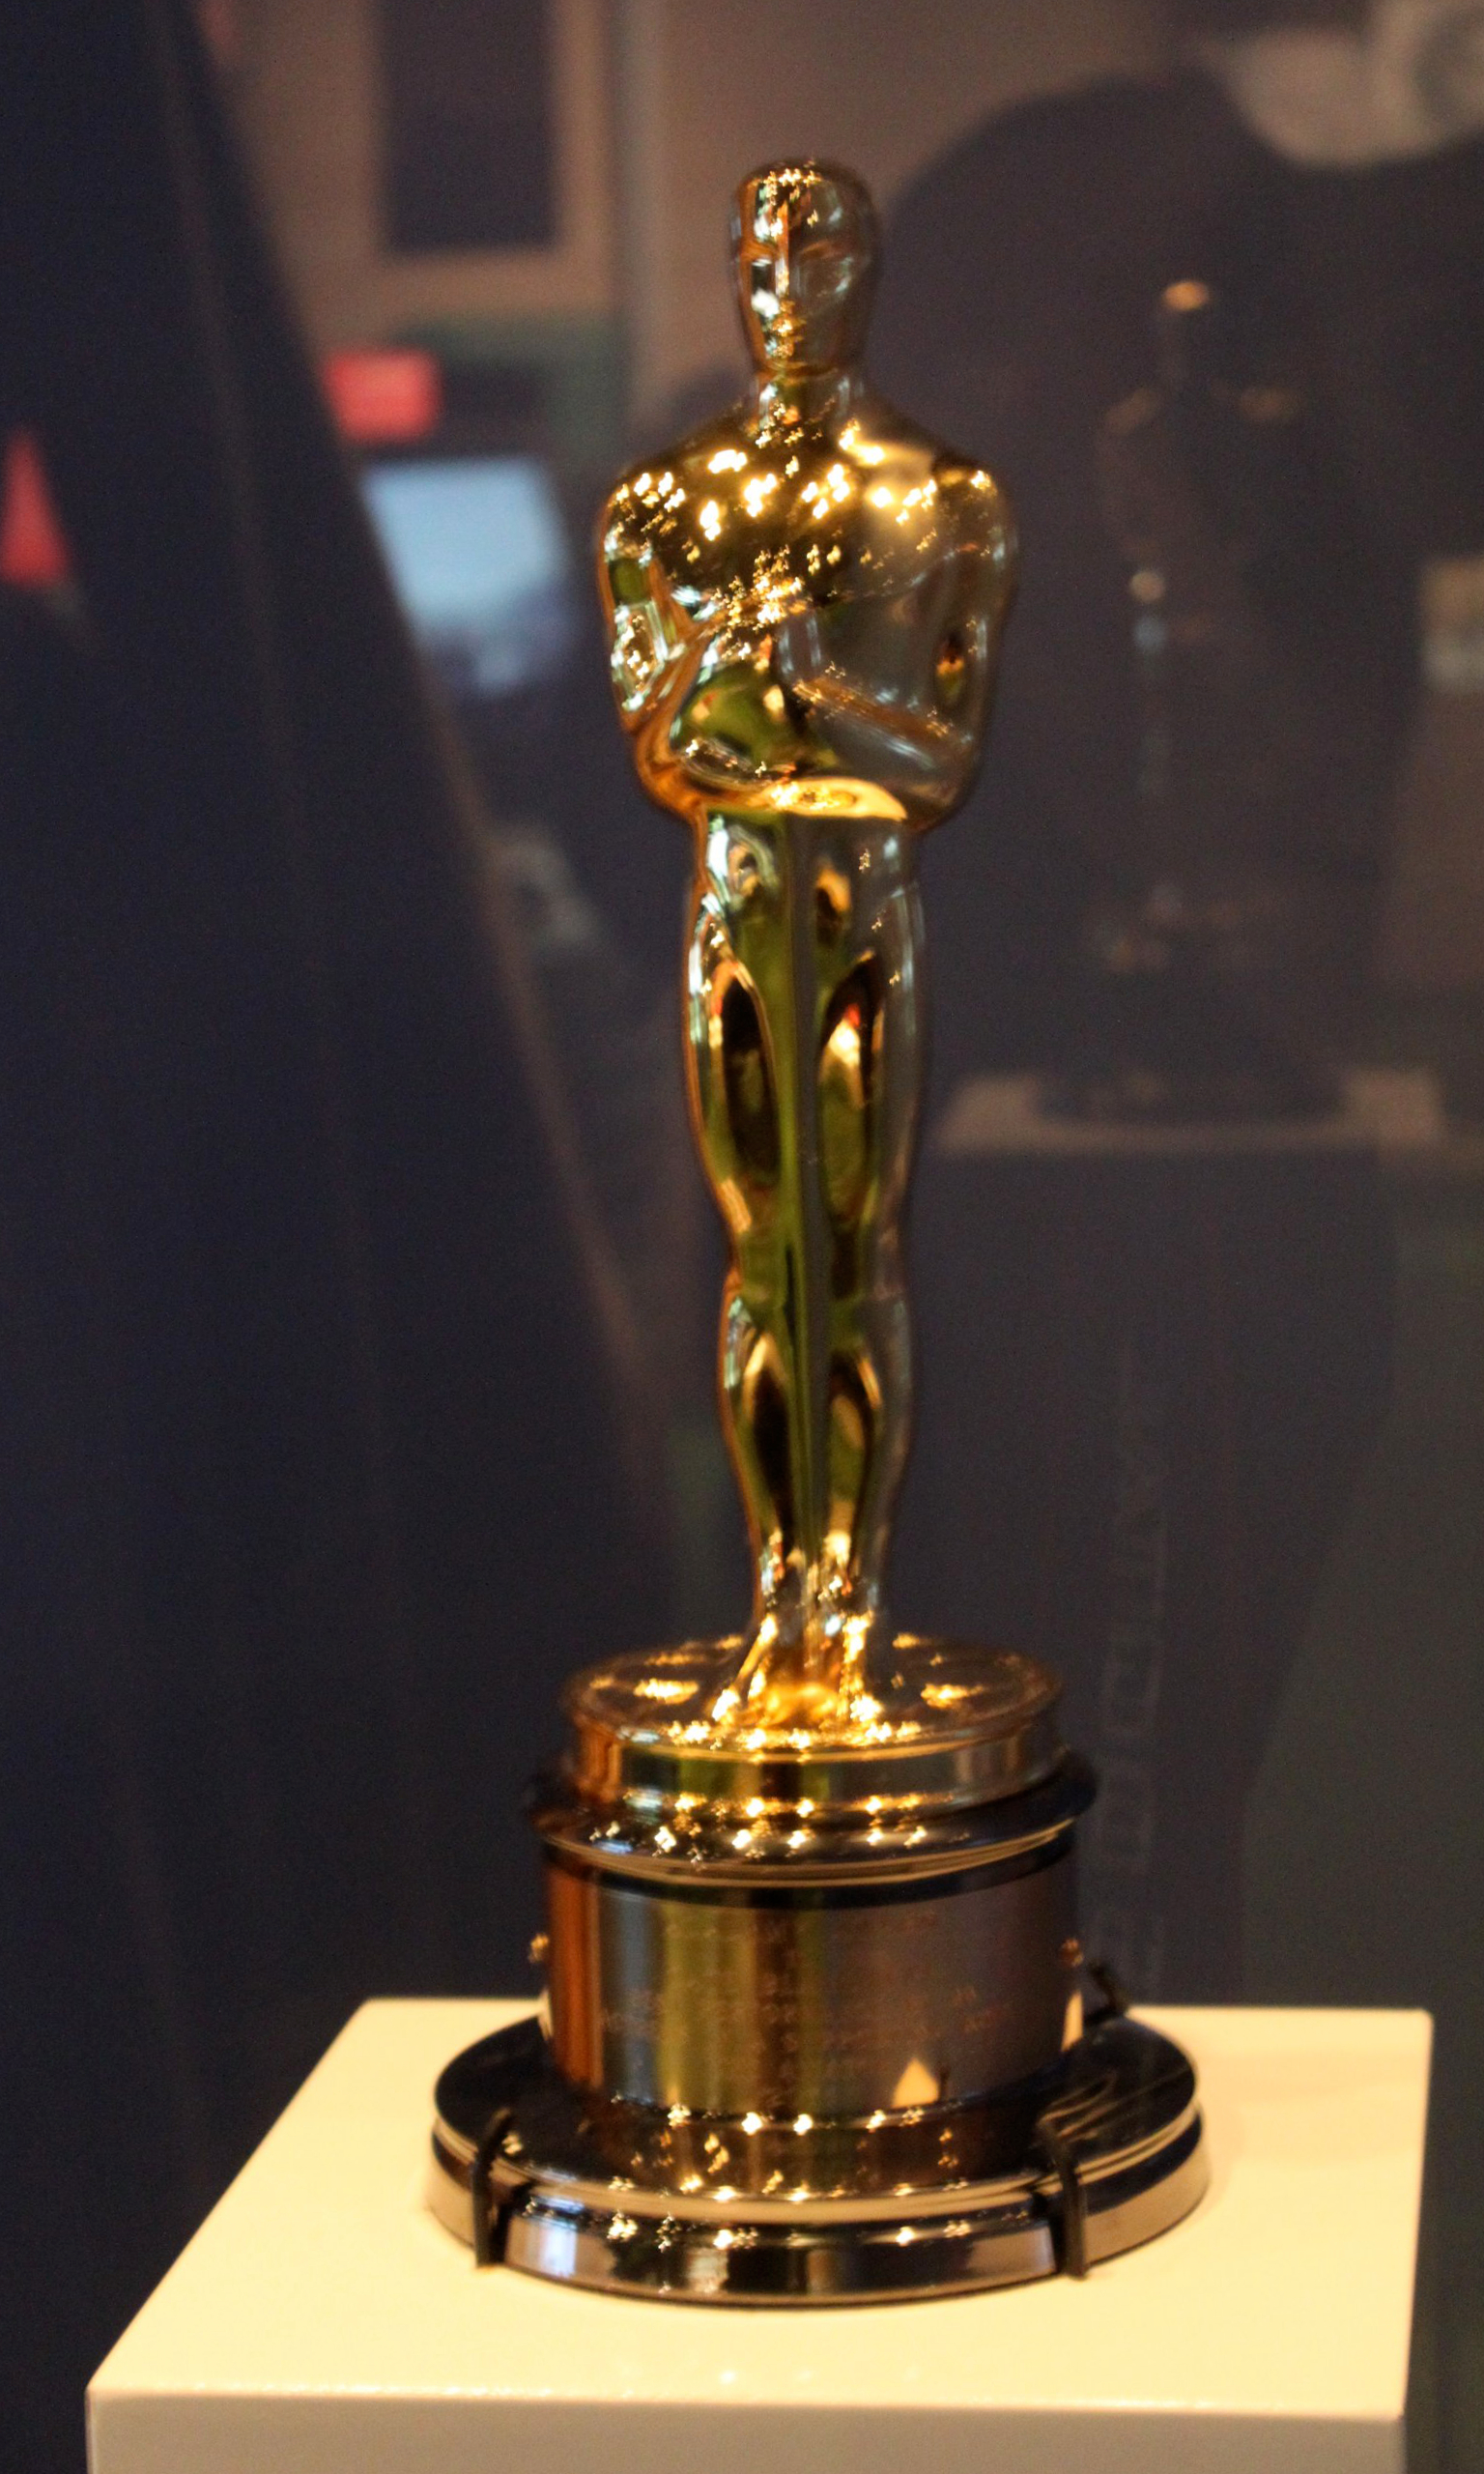 Cate Blanchett's Oscar for playing Katharine Hepburn in The Aviator ...